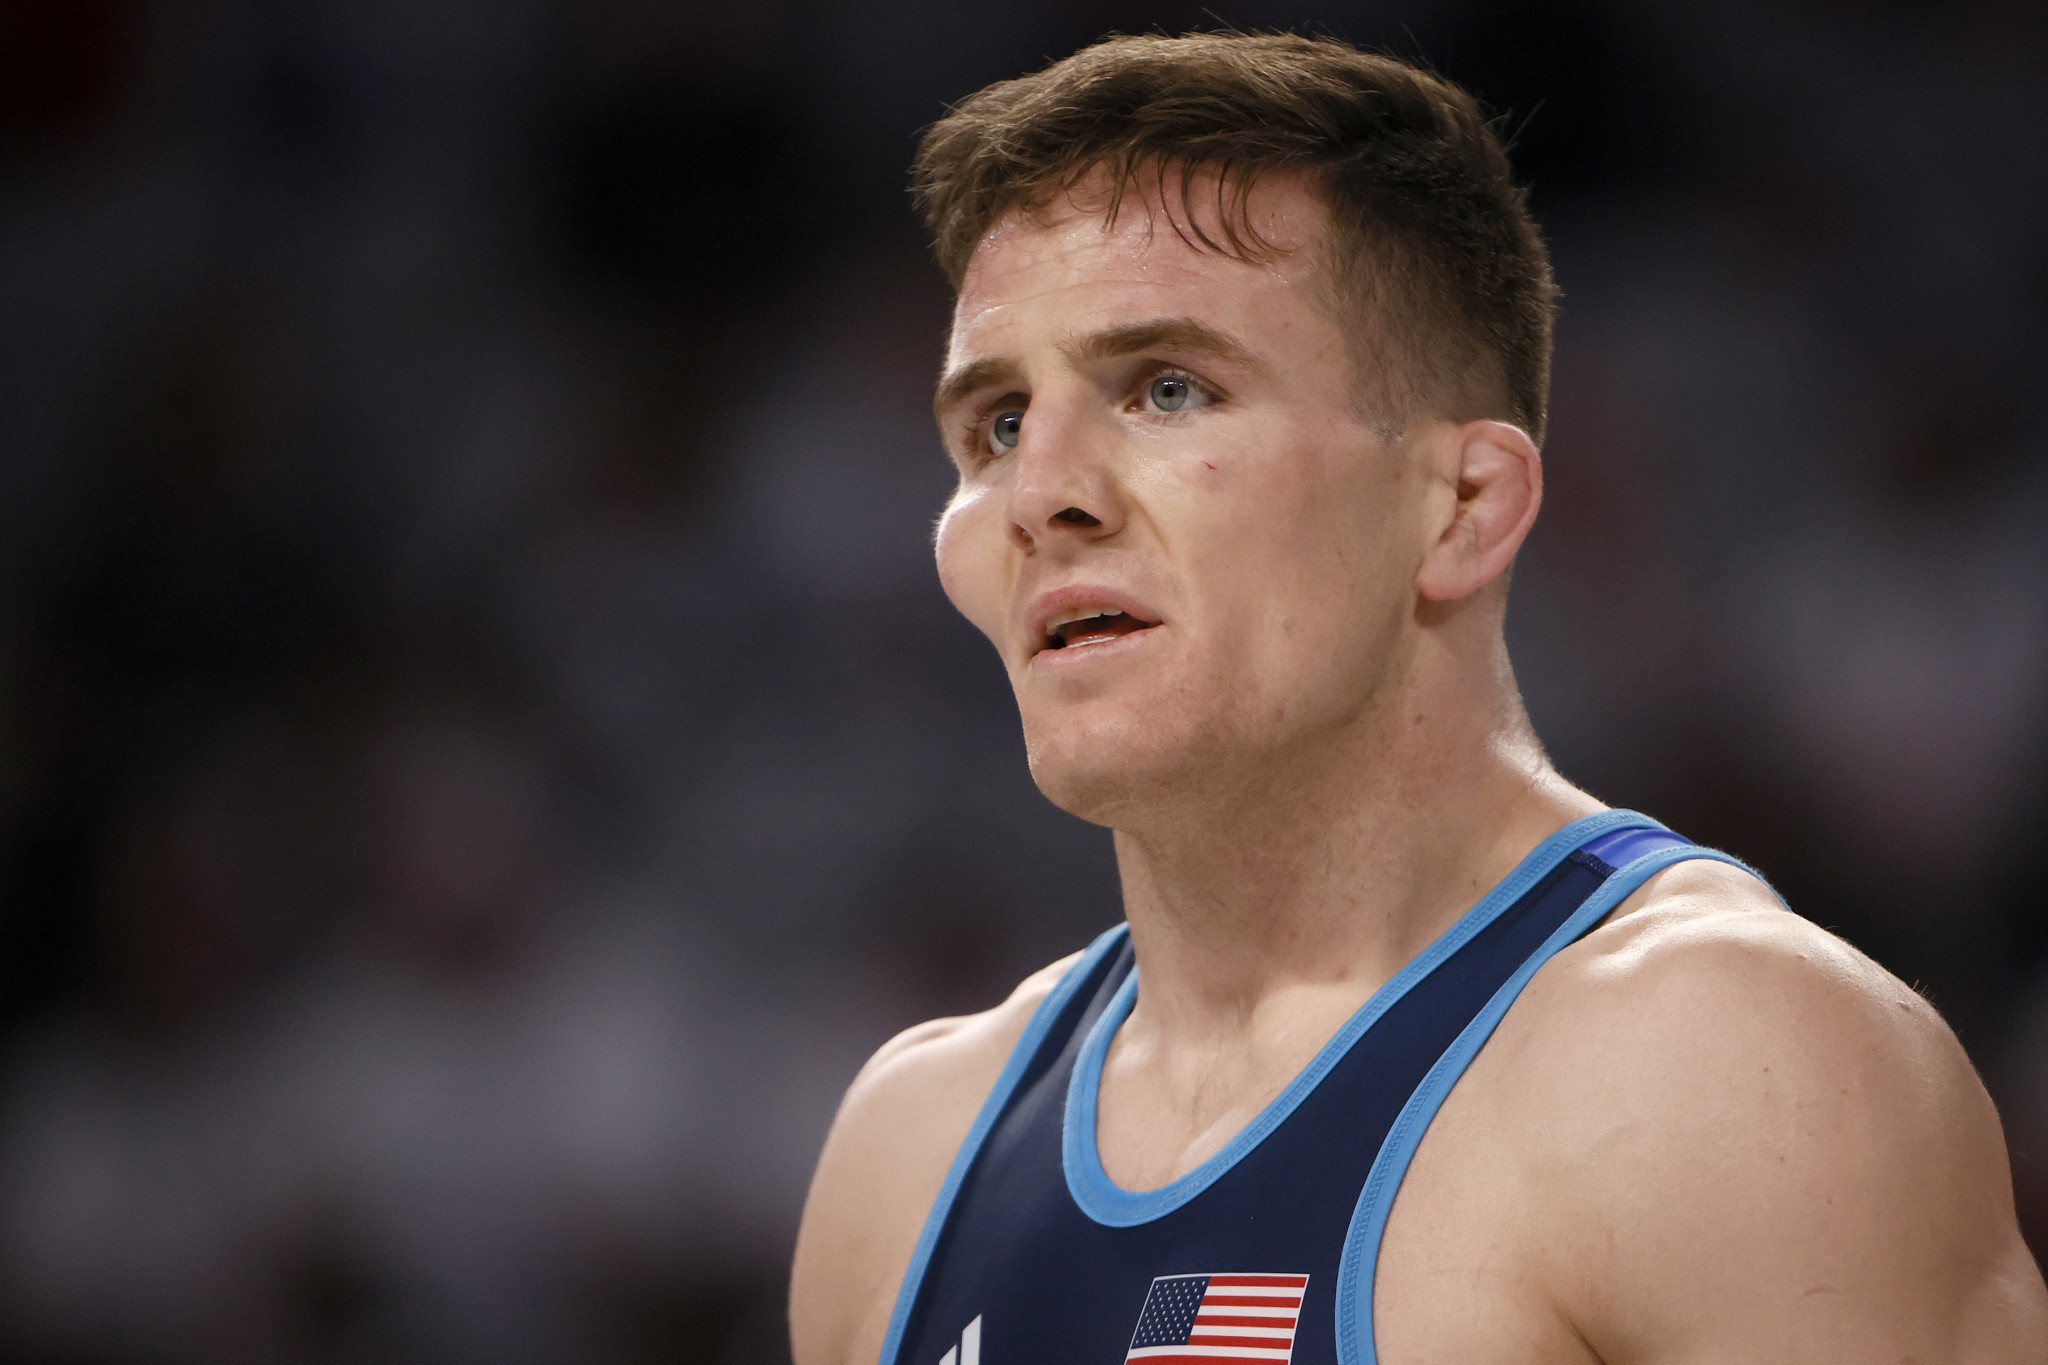 United States win seven titles on second day of Pan American Wrestling Championships